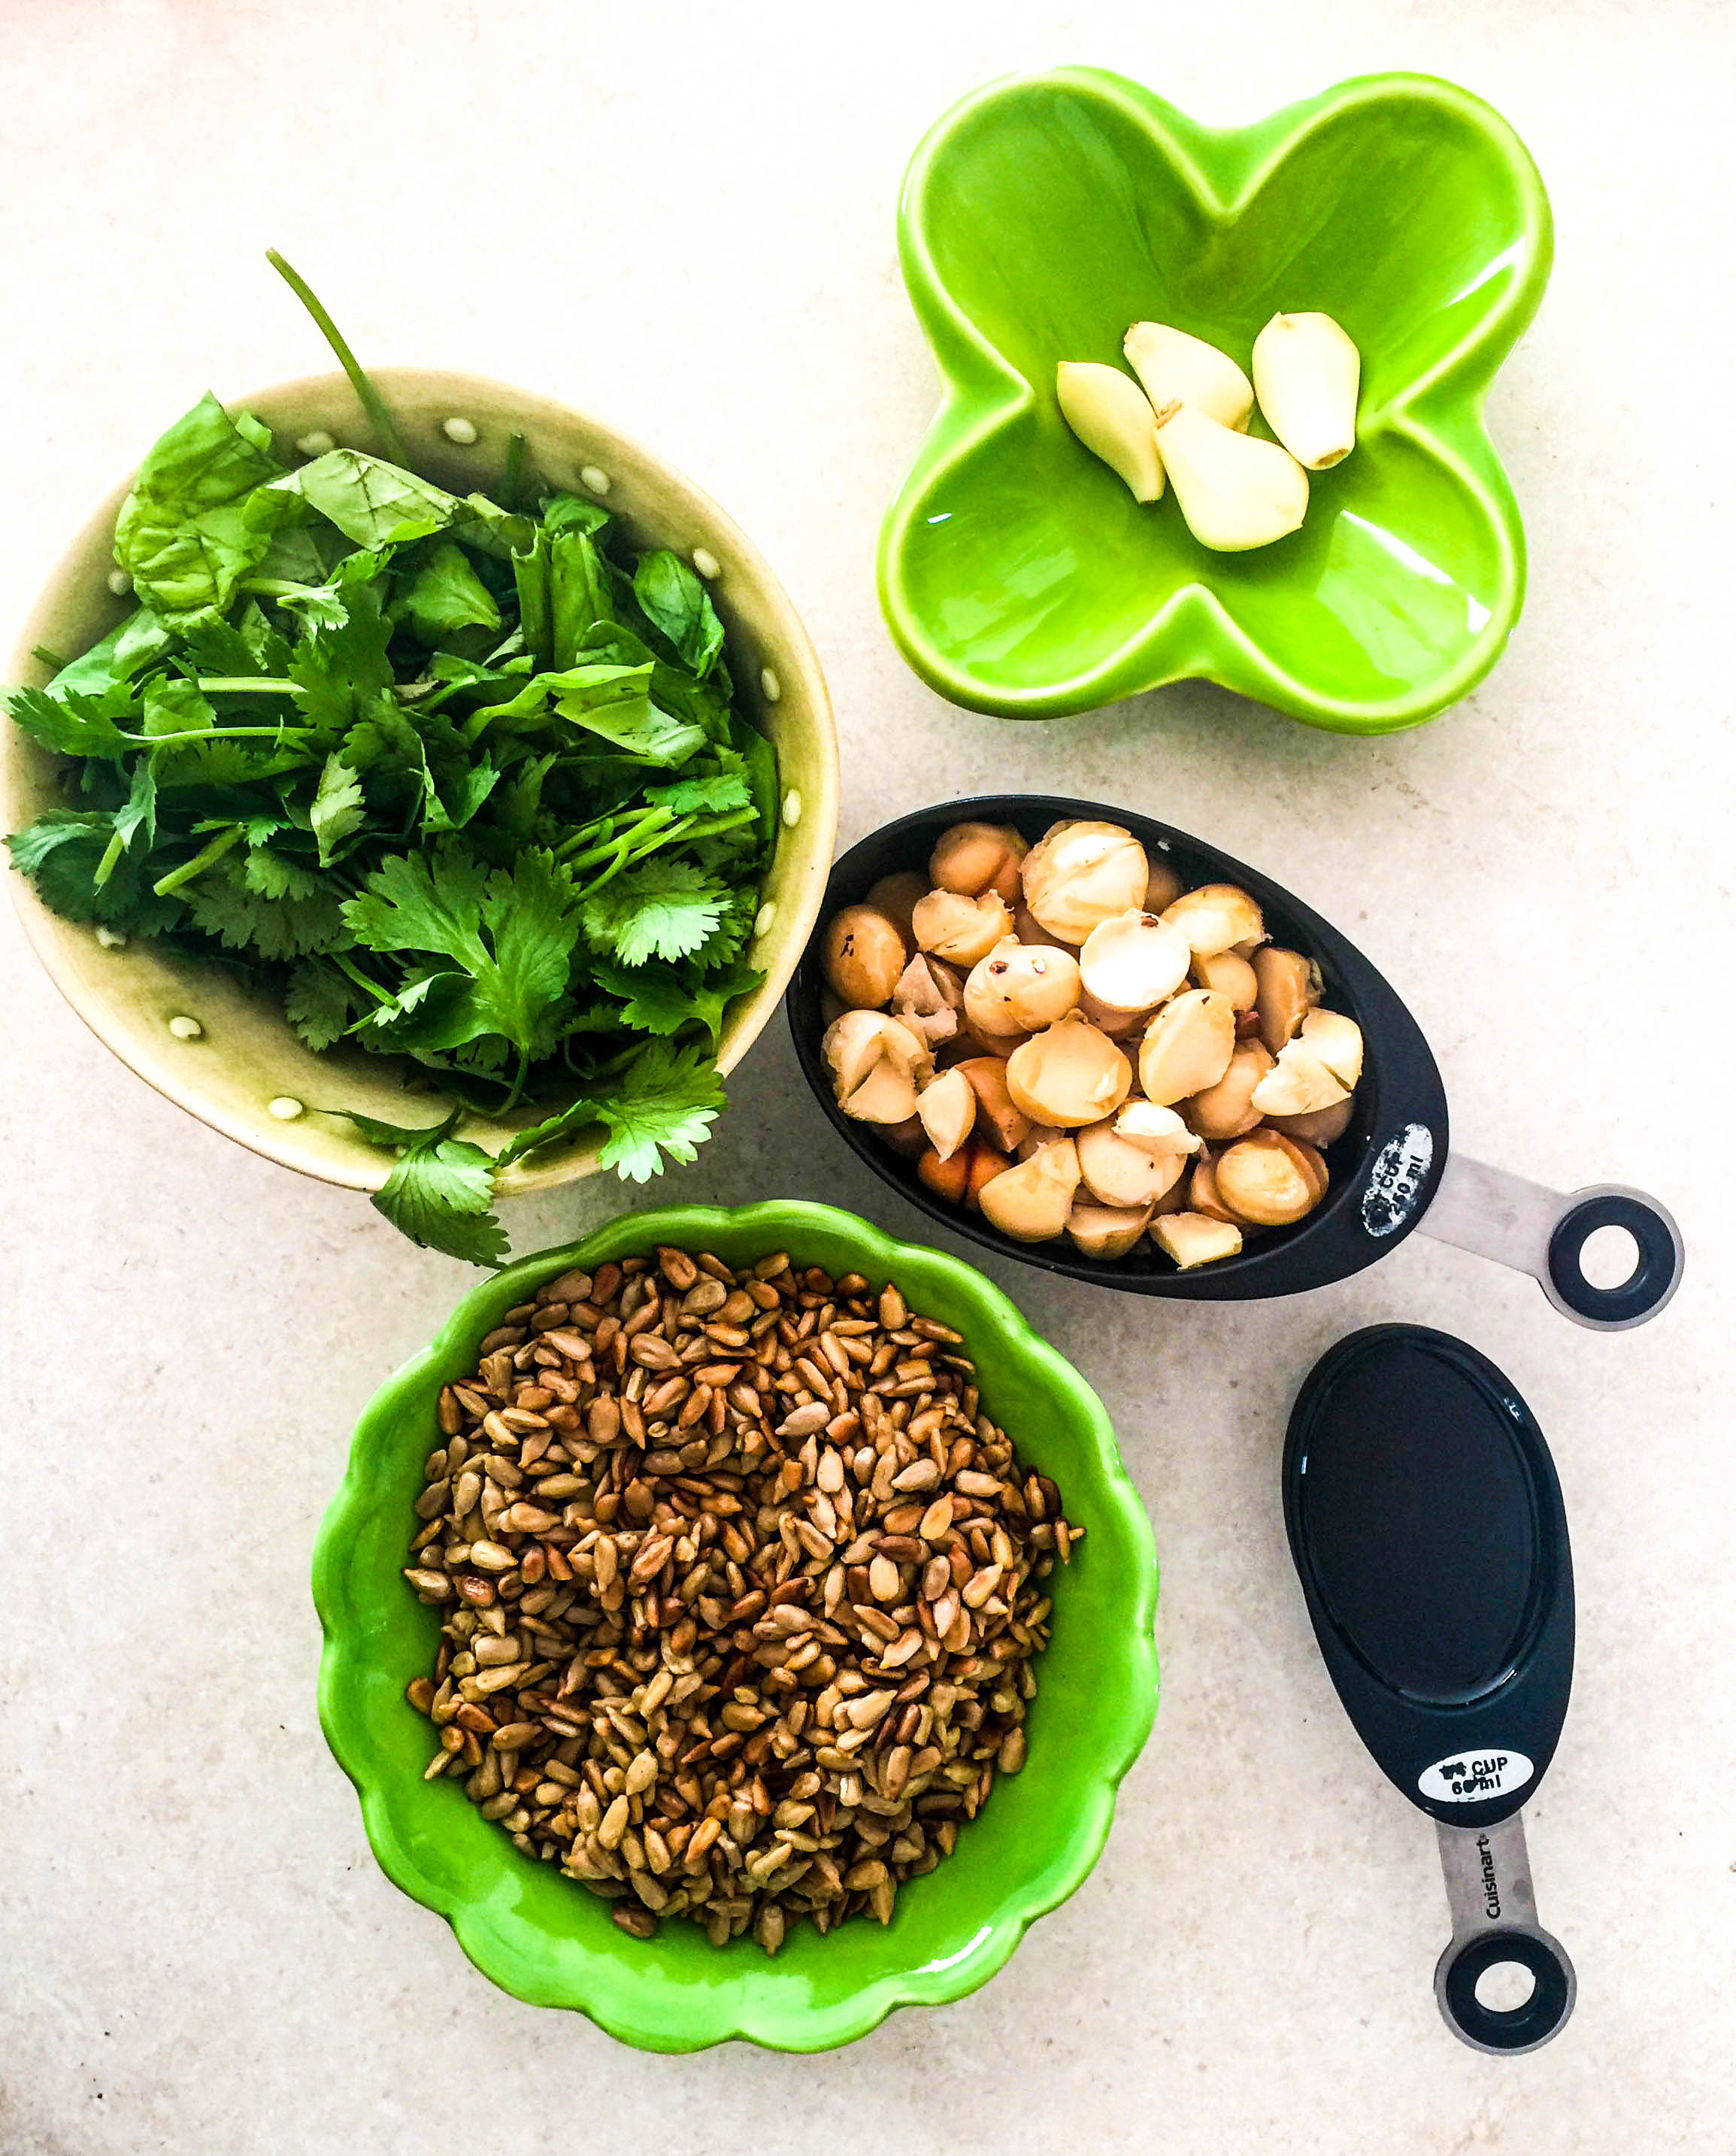 Pesto - 1. 1 cup of nuts (I used macadamia)2. 1 cup of basil3. 1/2 cup of coriander4. 1 cup of sunflower seeds (browned in a pan)5. 1/2 cup of olive oil (more or less depending on your preferred consistency).Throw all the ingredients into the blender and blend until it looks and tastes how you like it. Add salt and pepper for flavour.* Vegan, Gluten Free